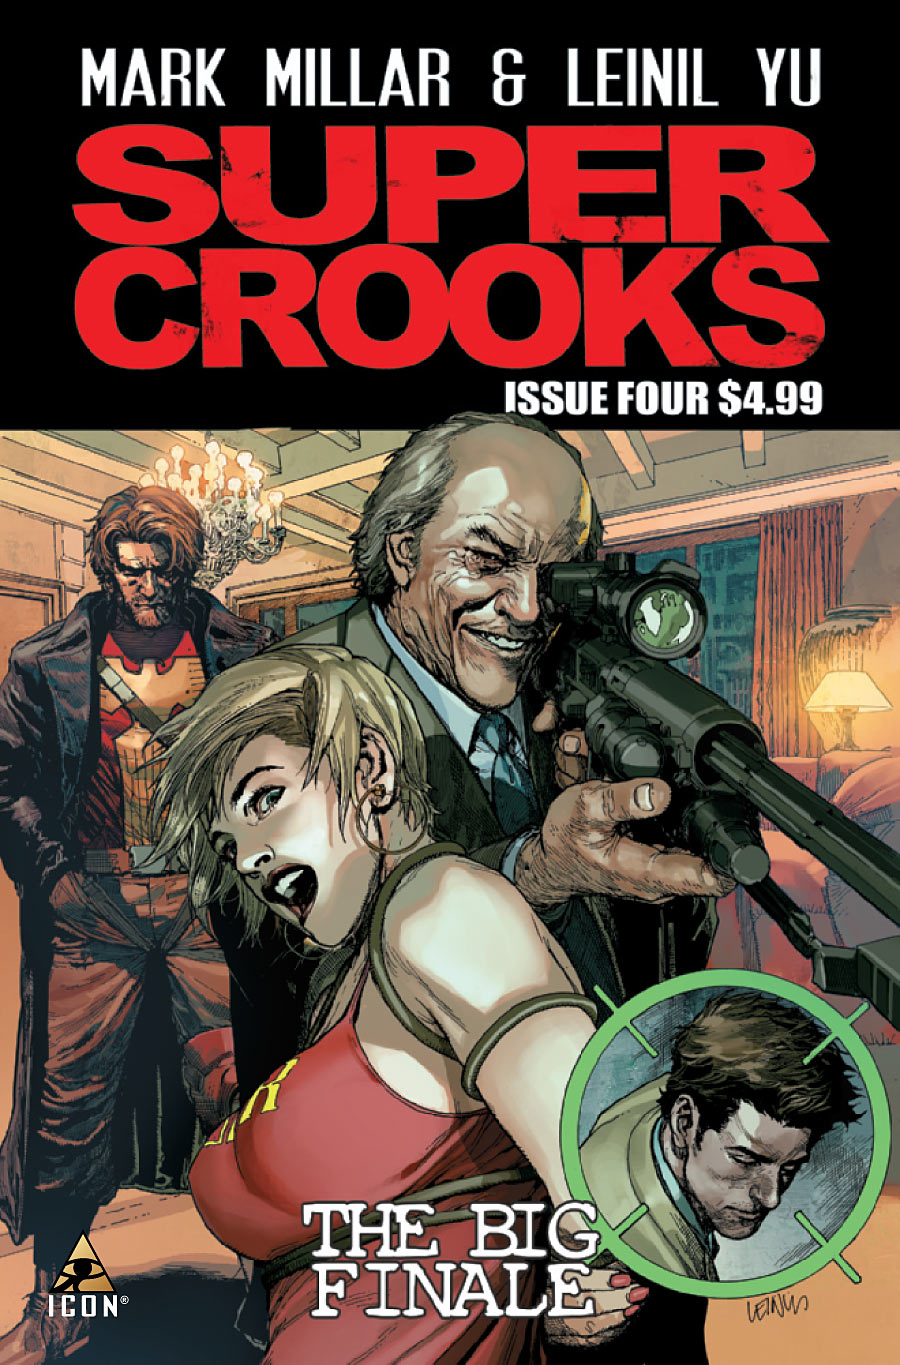 Super Crooks Number 4